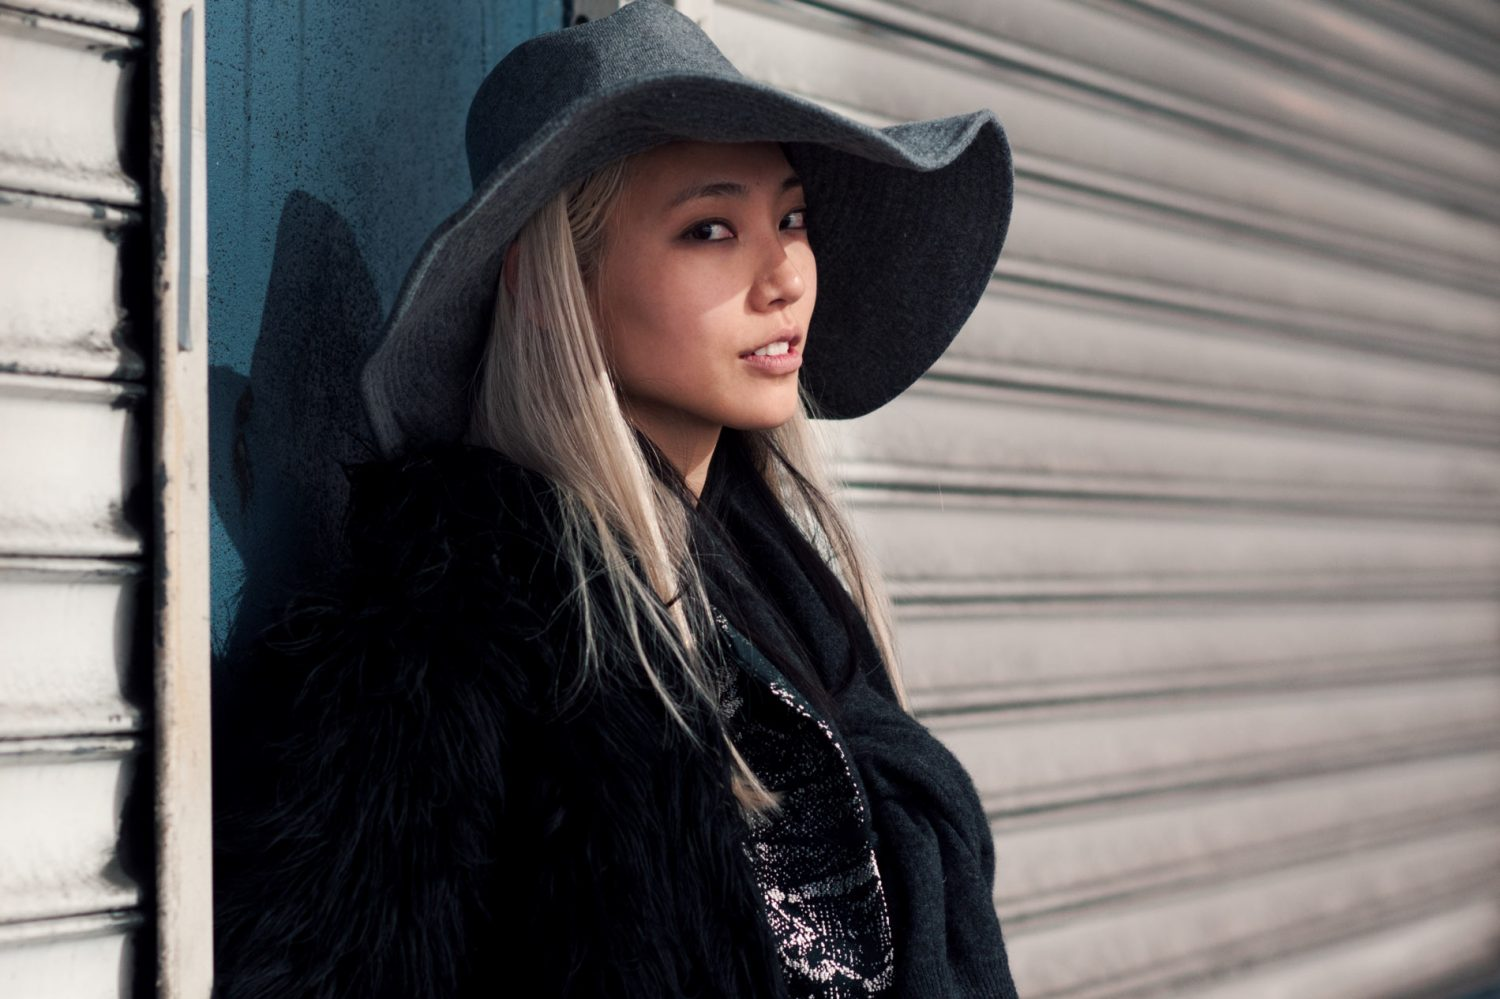 Soo Joo Park at New York Fashion Week Fall/Winter